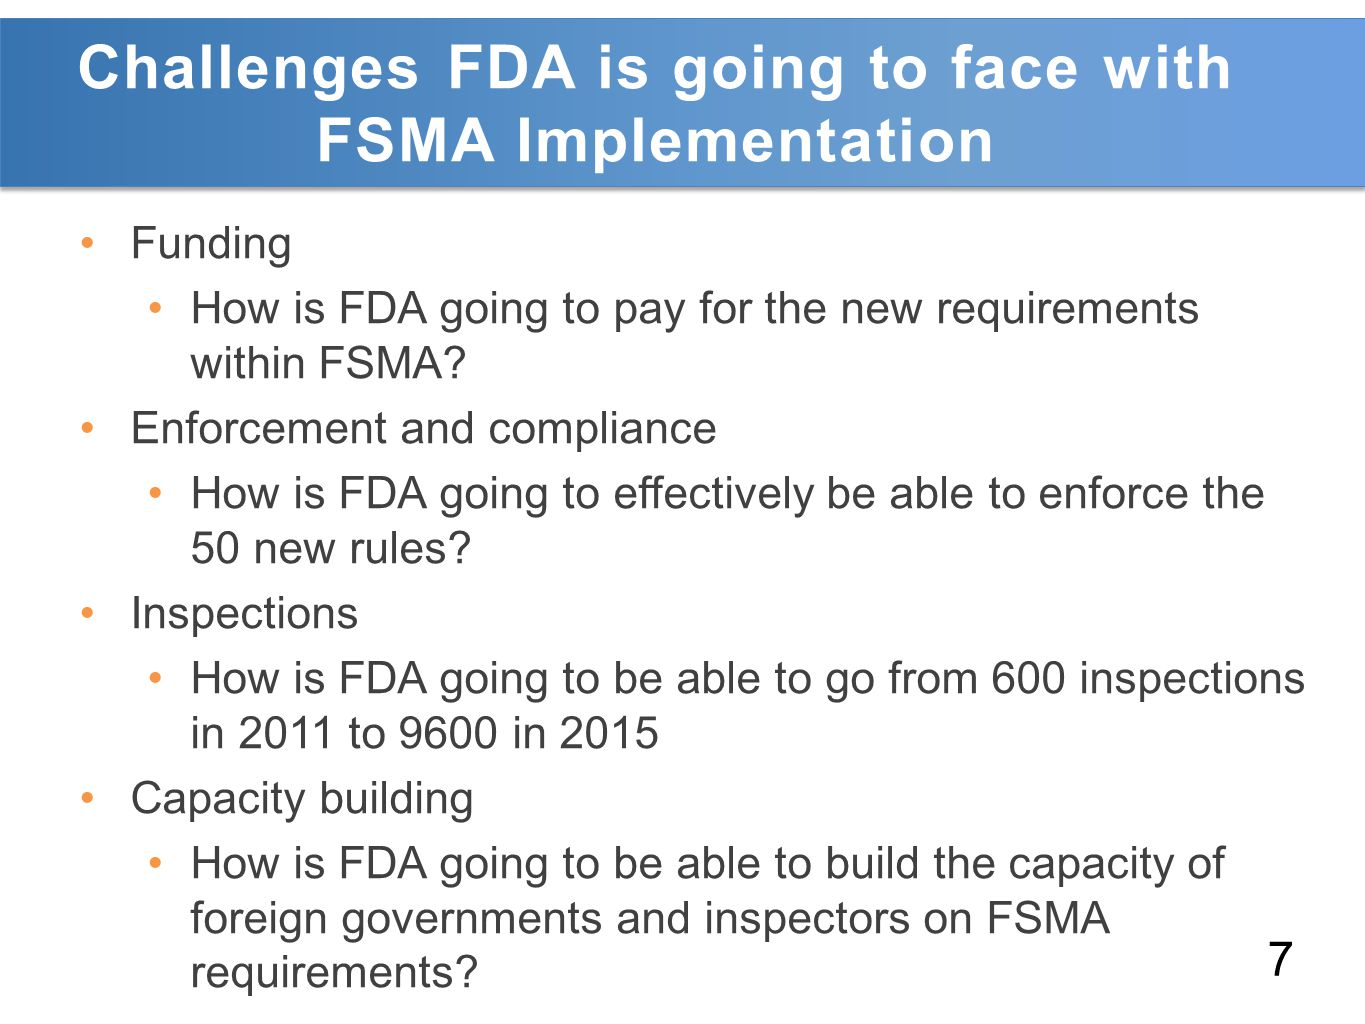 Challenges FDA is going to face with FSMA Implementation